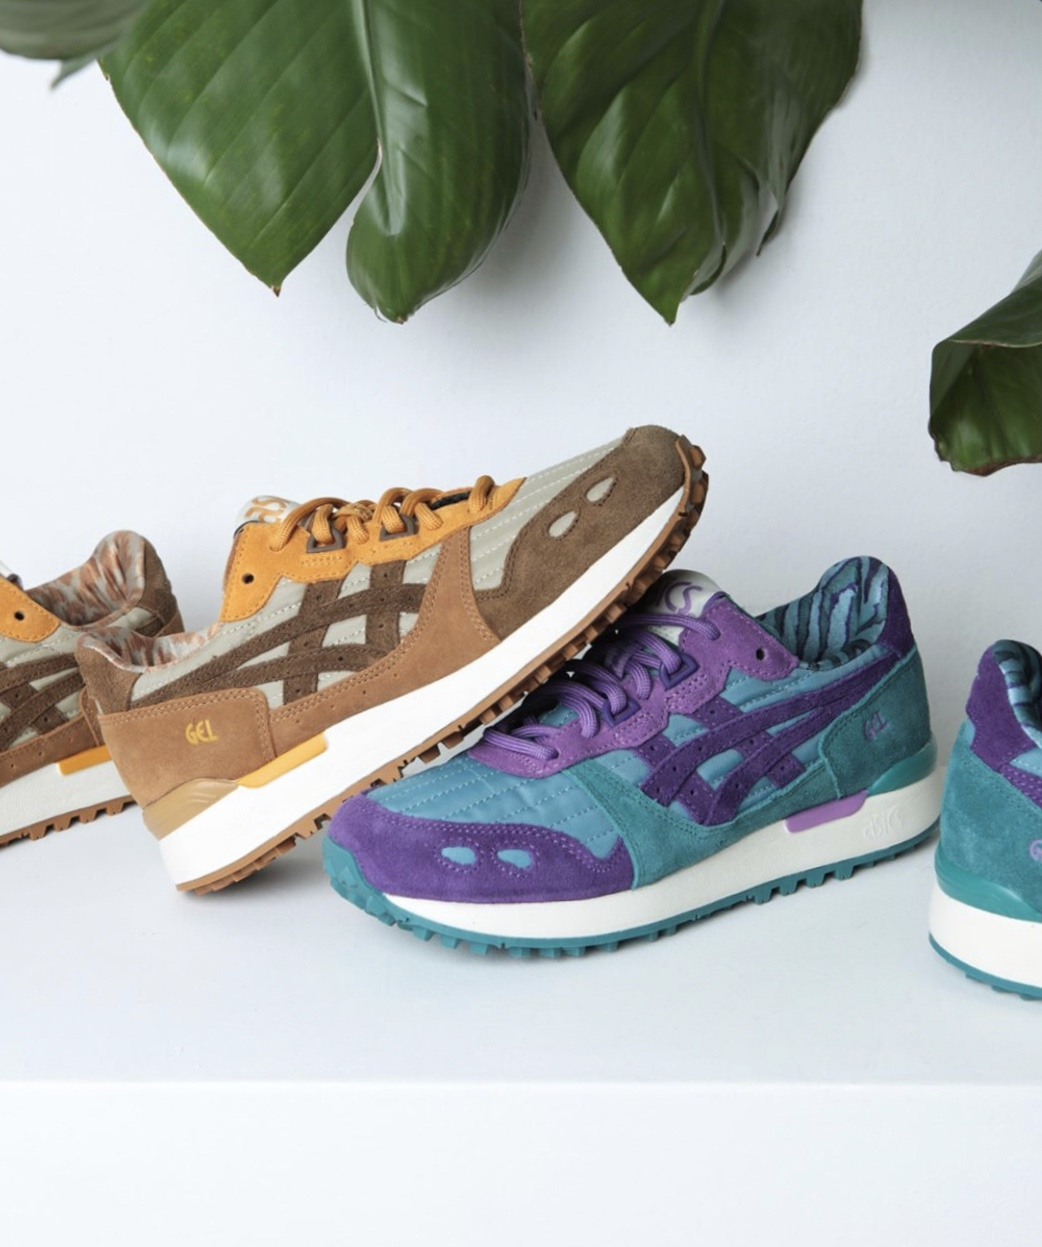 Asics x YMC Release a Bold Duo with the